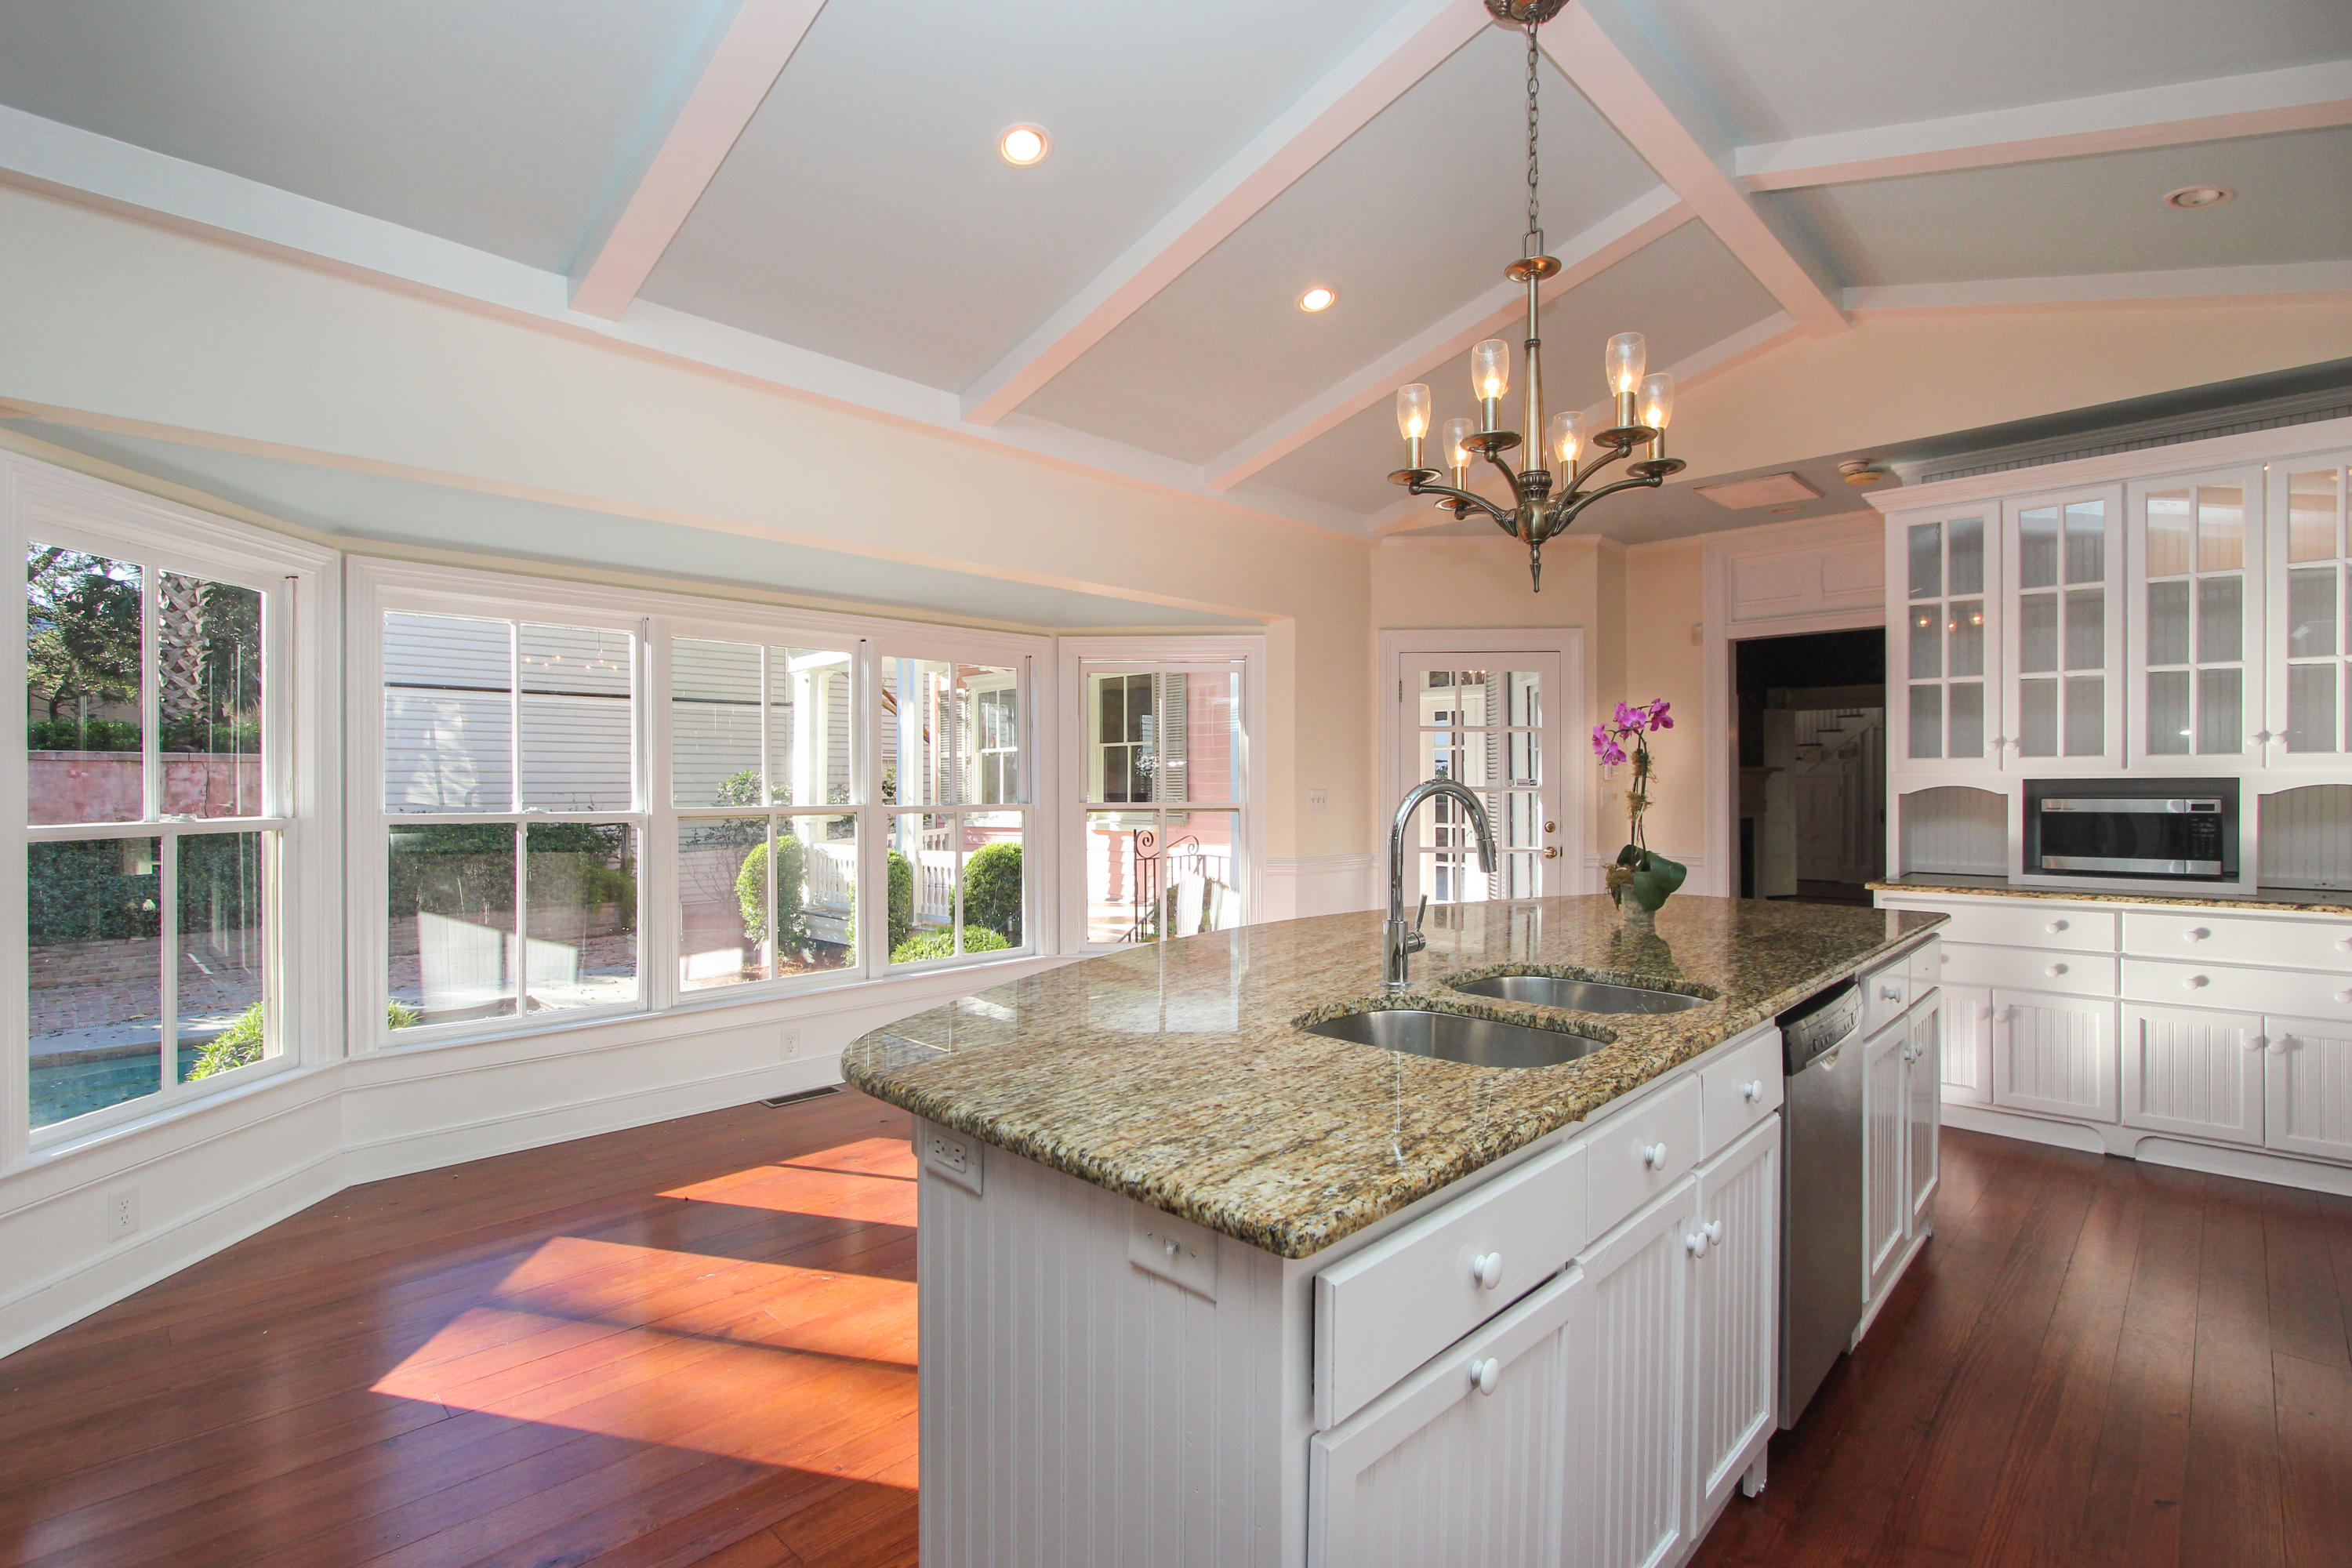 South of Broad Homes For Sale - 47 South Battery, Charleston, SC - 28